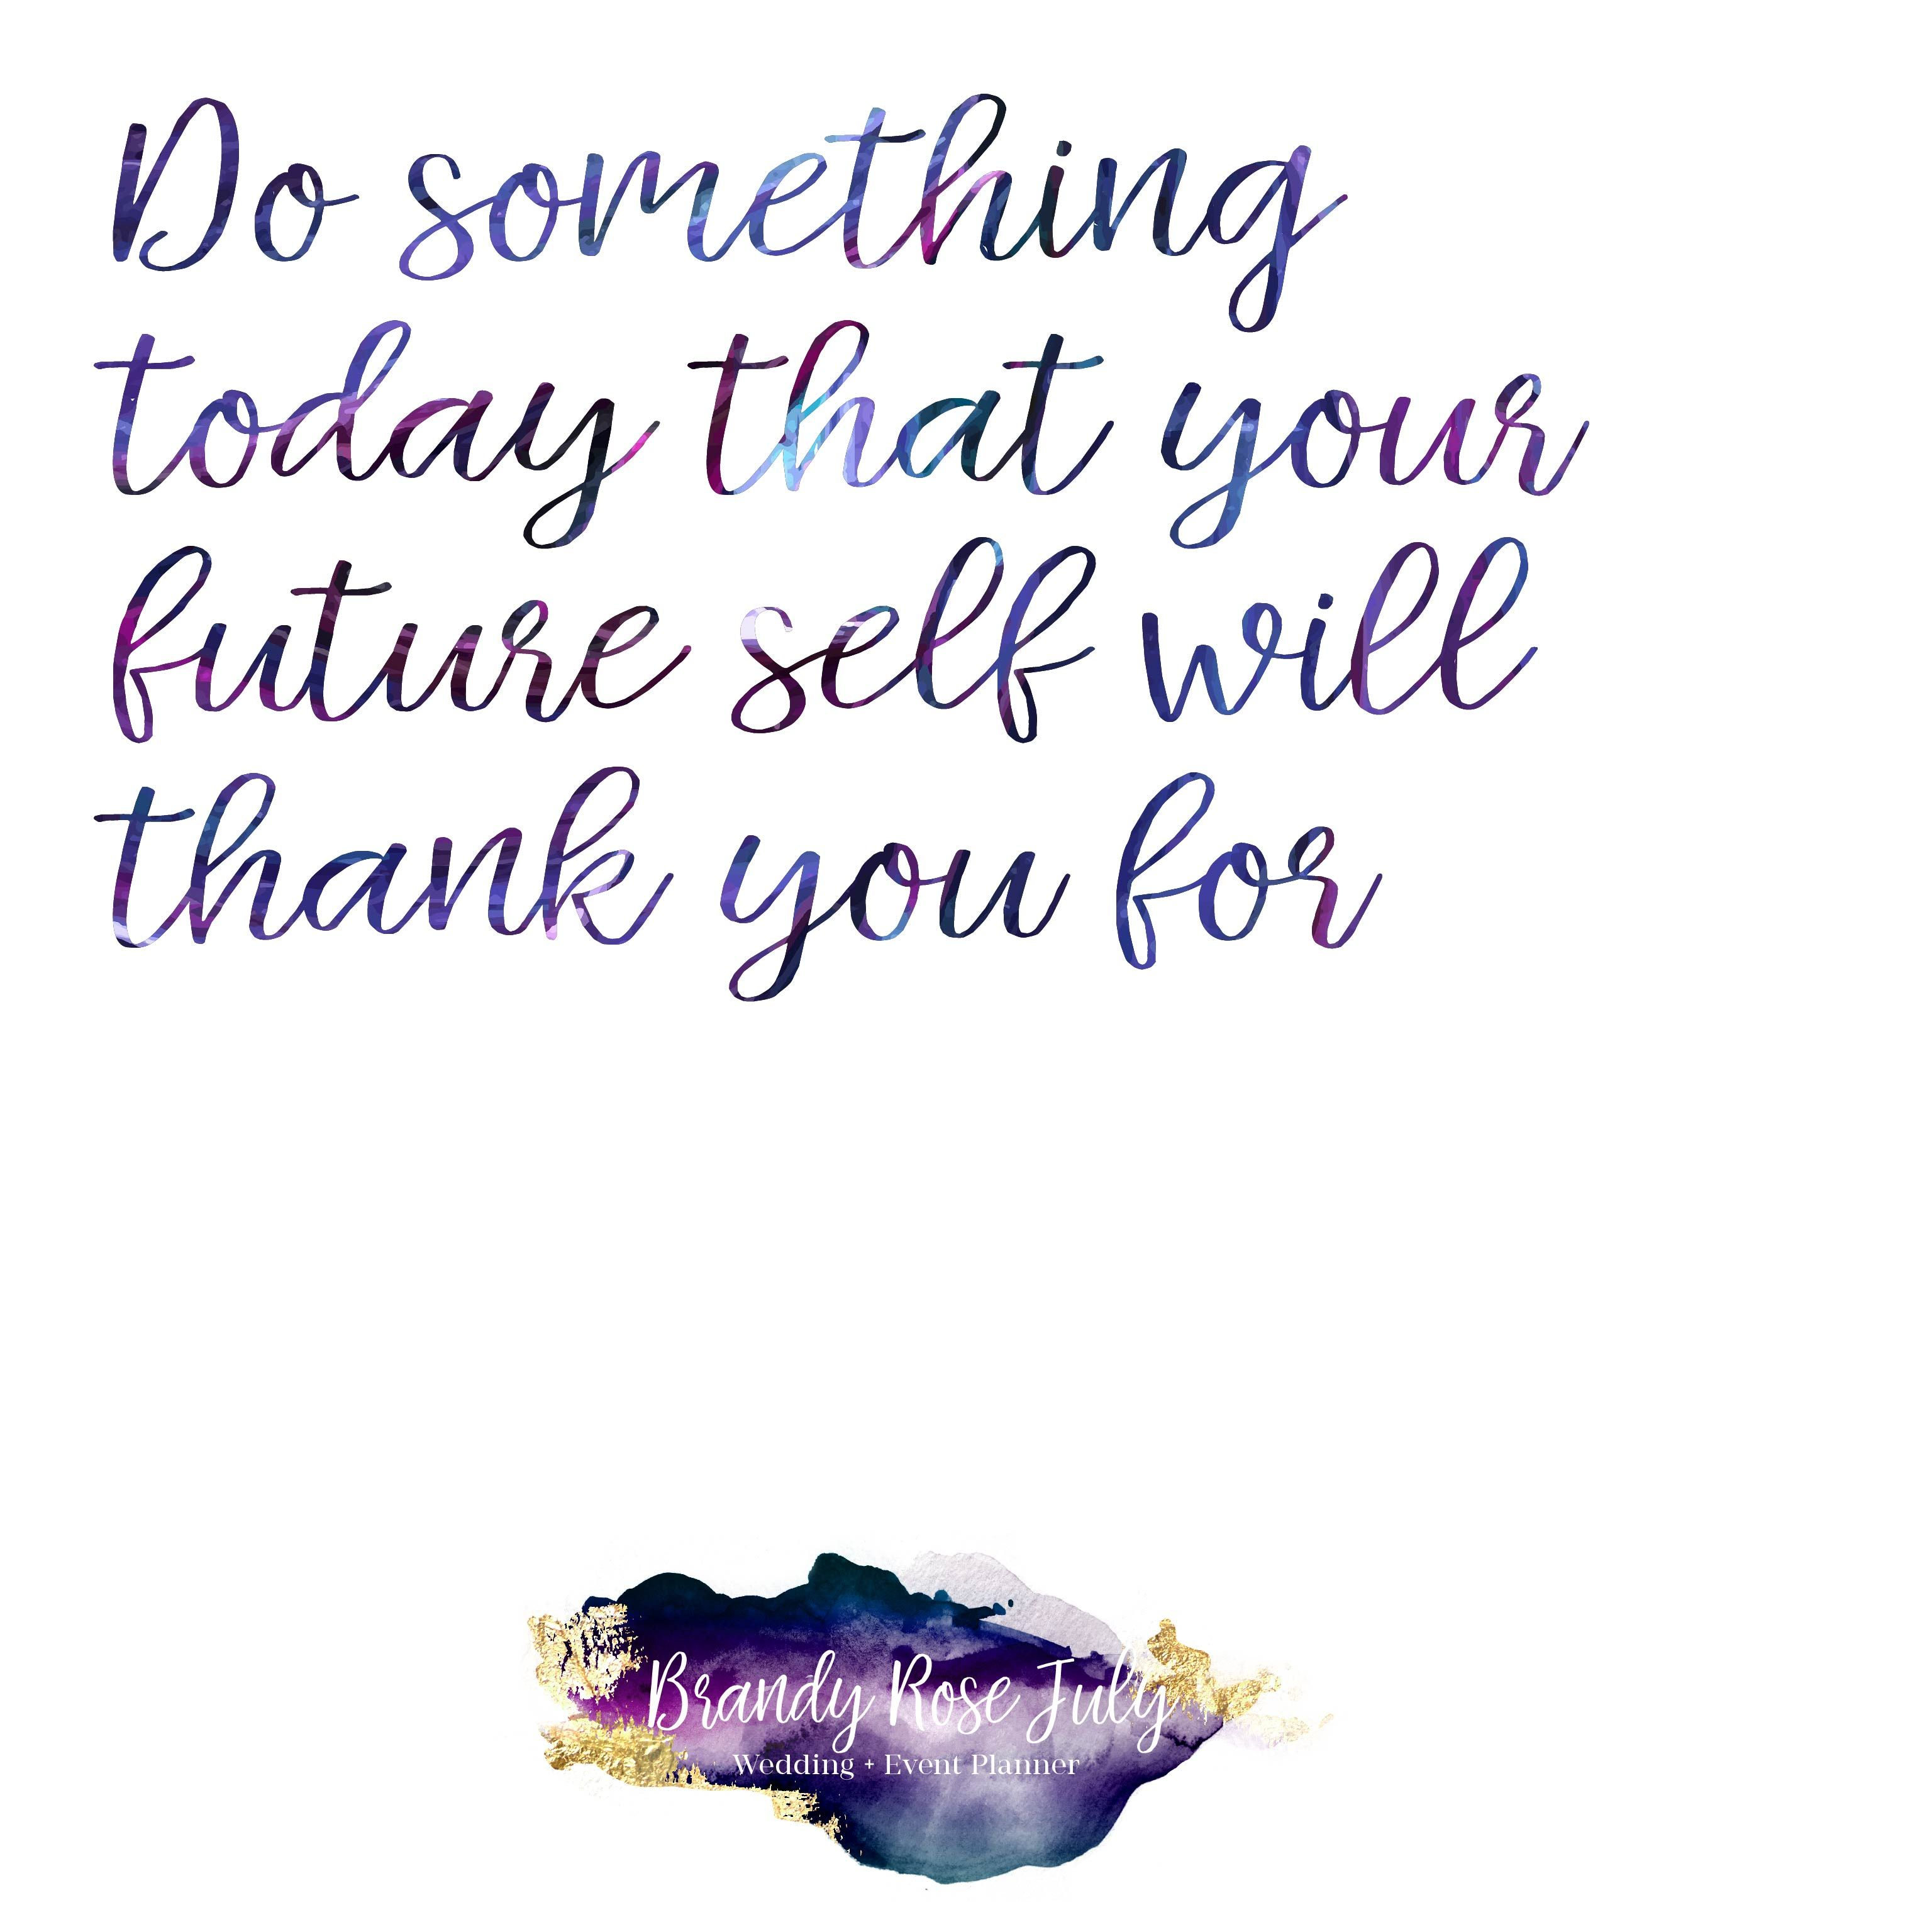 17 Inspirational Quotes Let S Keep Our Monday Vibes Positive And Funny Inspirational Quotes Monday Quotes Event Planning Quotes